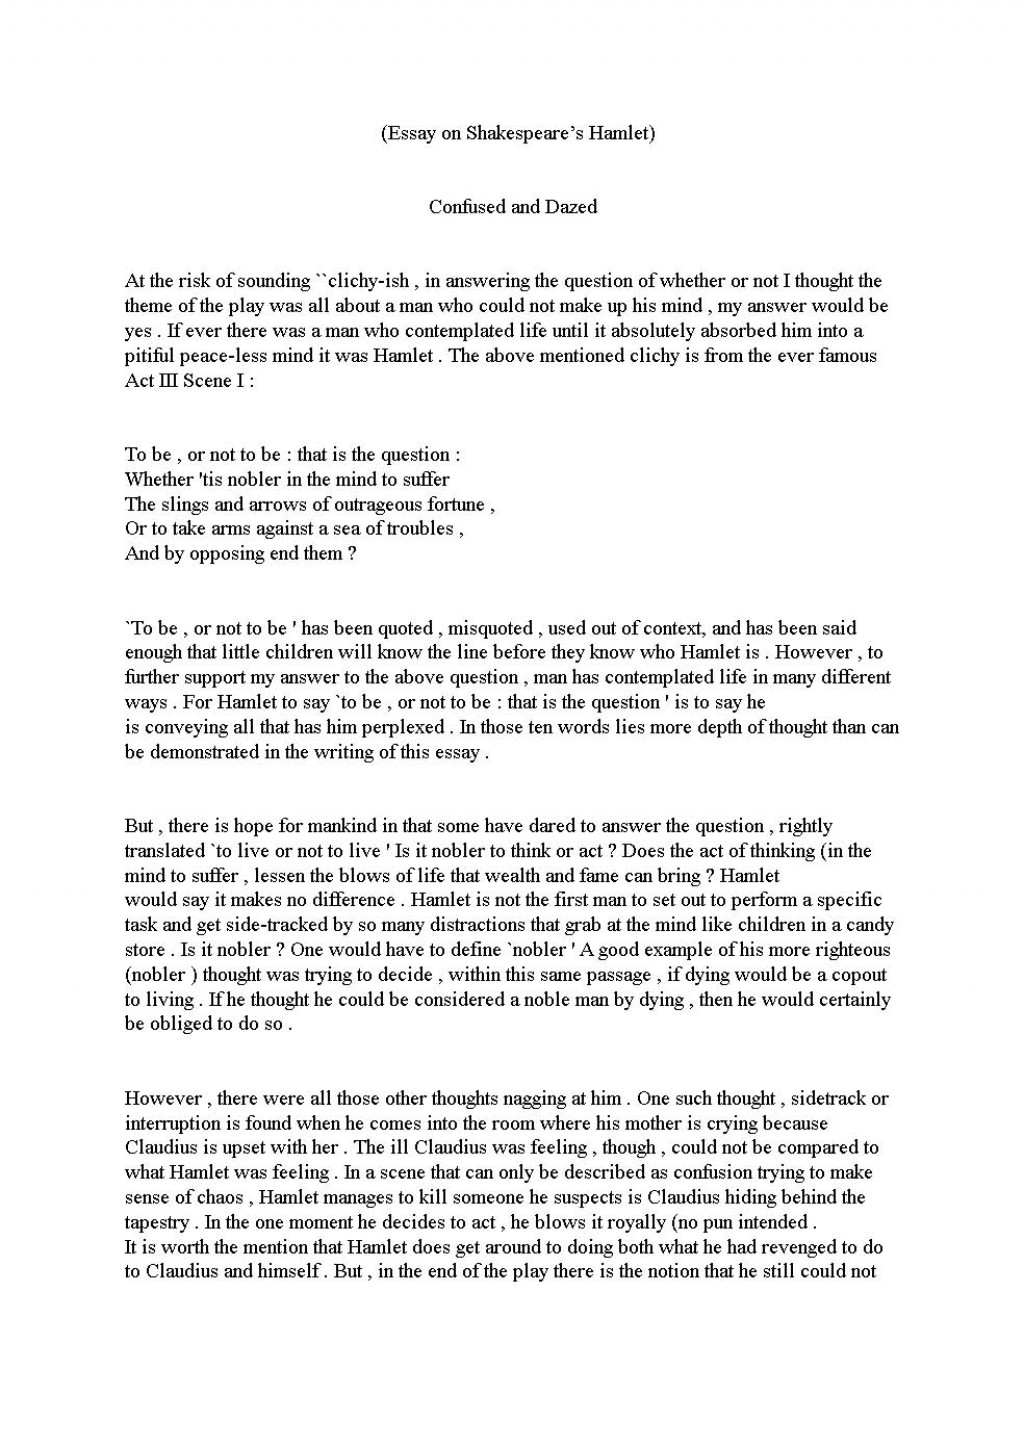 002 Drama Essay Sample Example Unbelievable Poetry Comparative Analysis Comparison Large